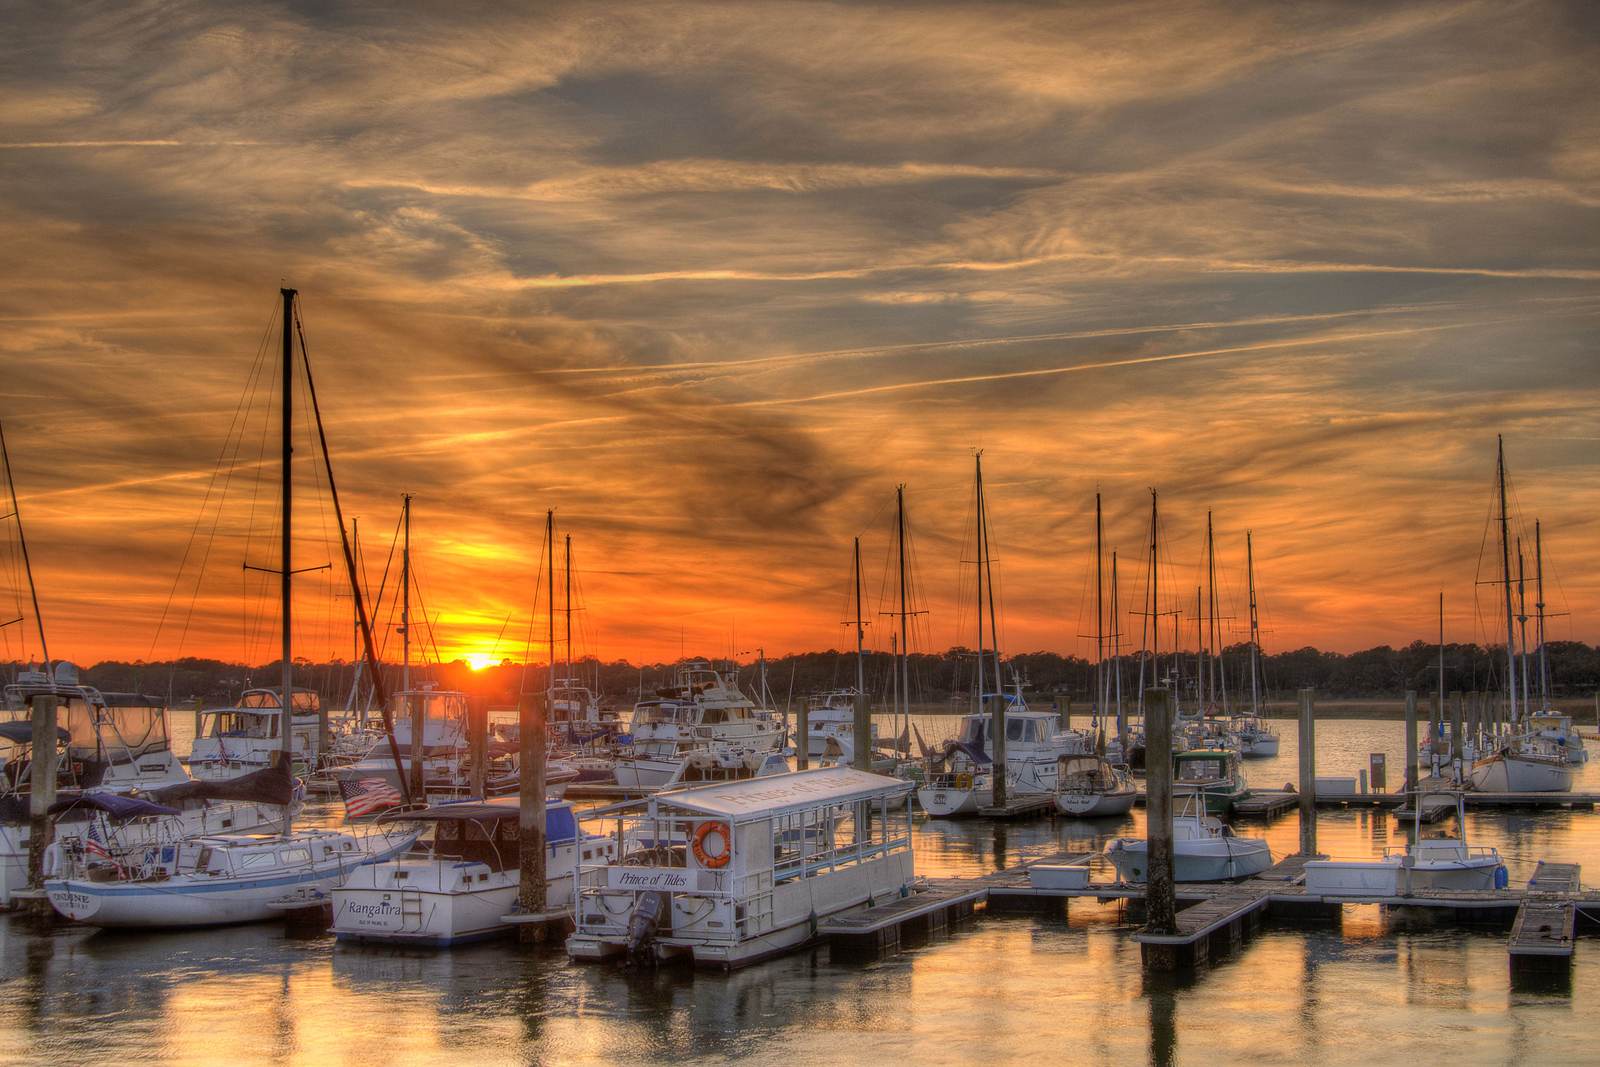 Sunset at the marina along the Henry C. Chambers Waterfront Park in Beaufort, SC on Friday, February 20, 2015. Copyright 2015 Jason Barnette